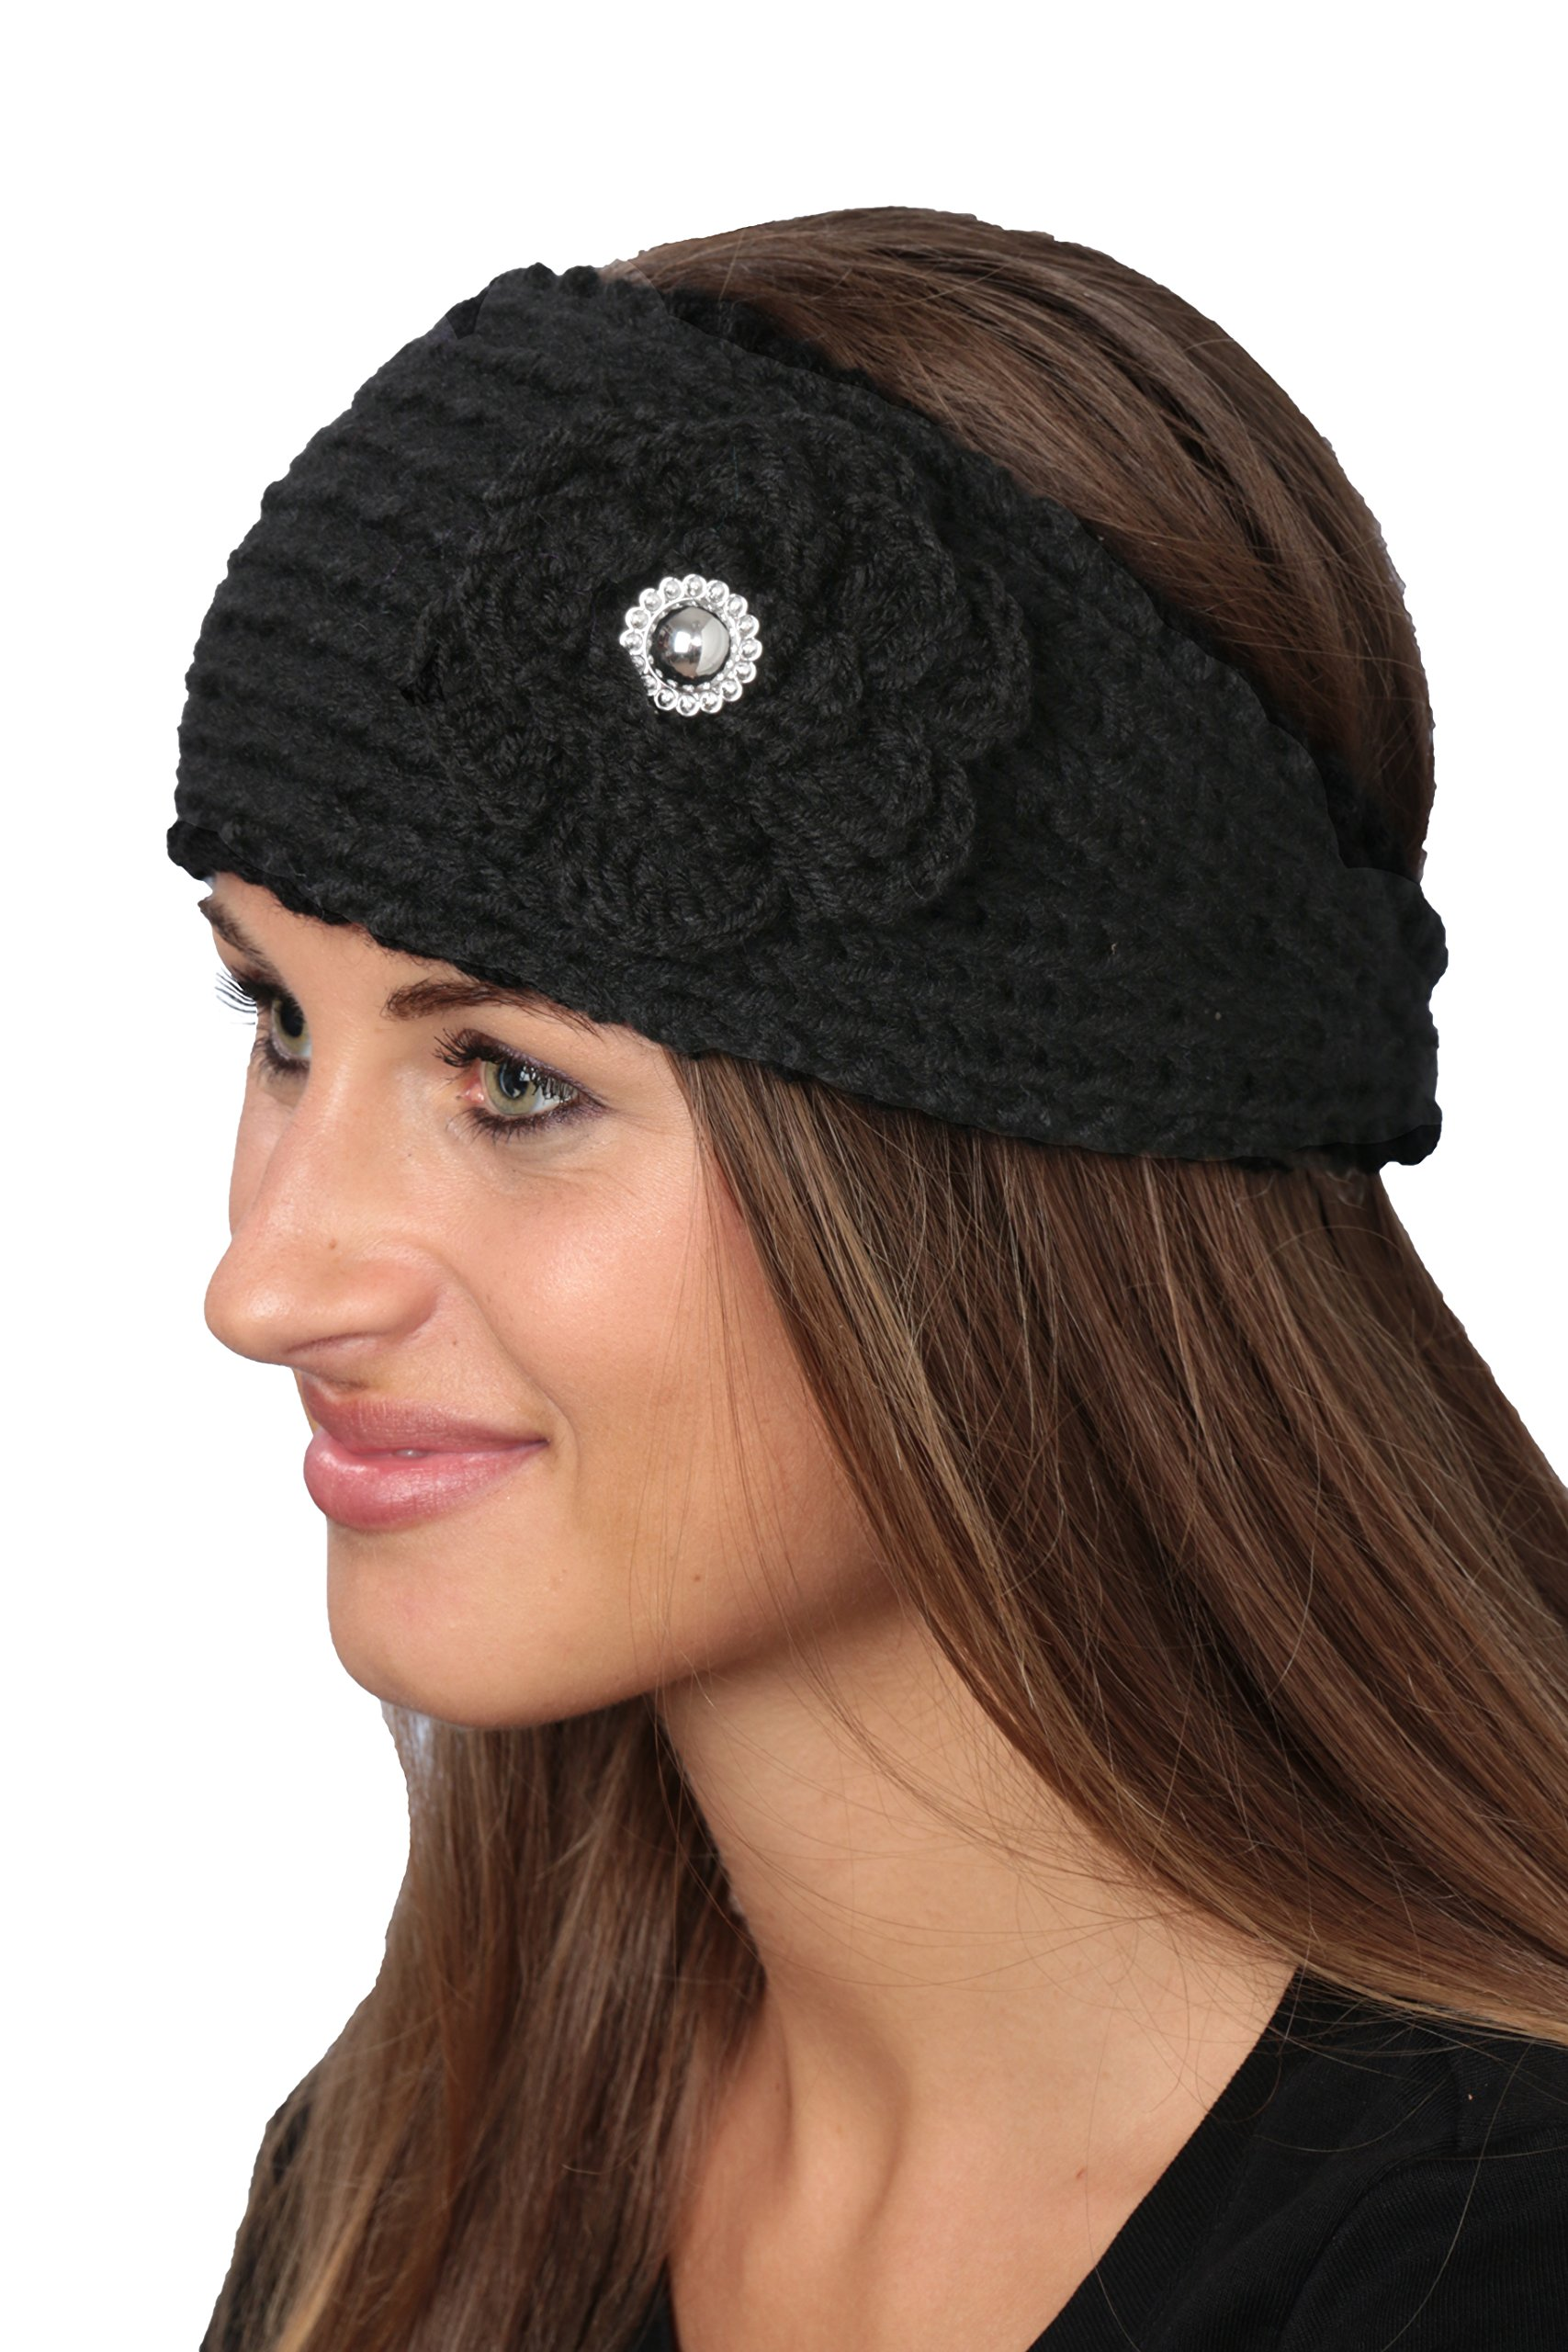 Active Club Winter Fashion Headbands-assorted Styles 2 Pack (Black & Teal)